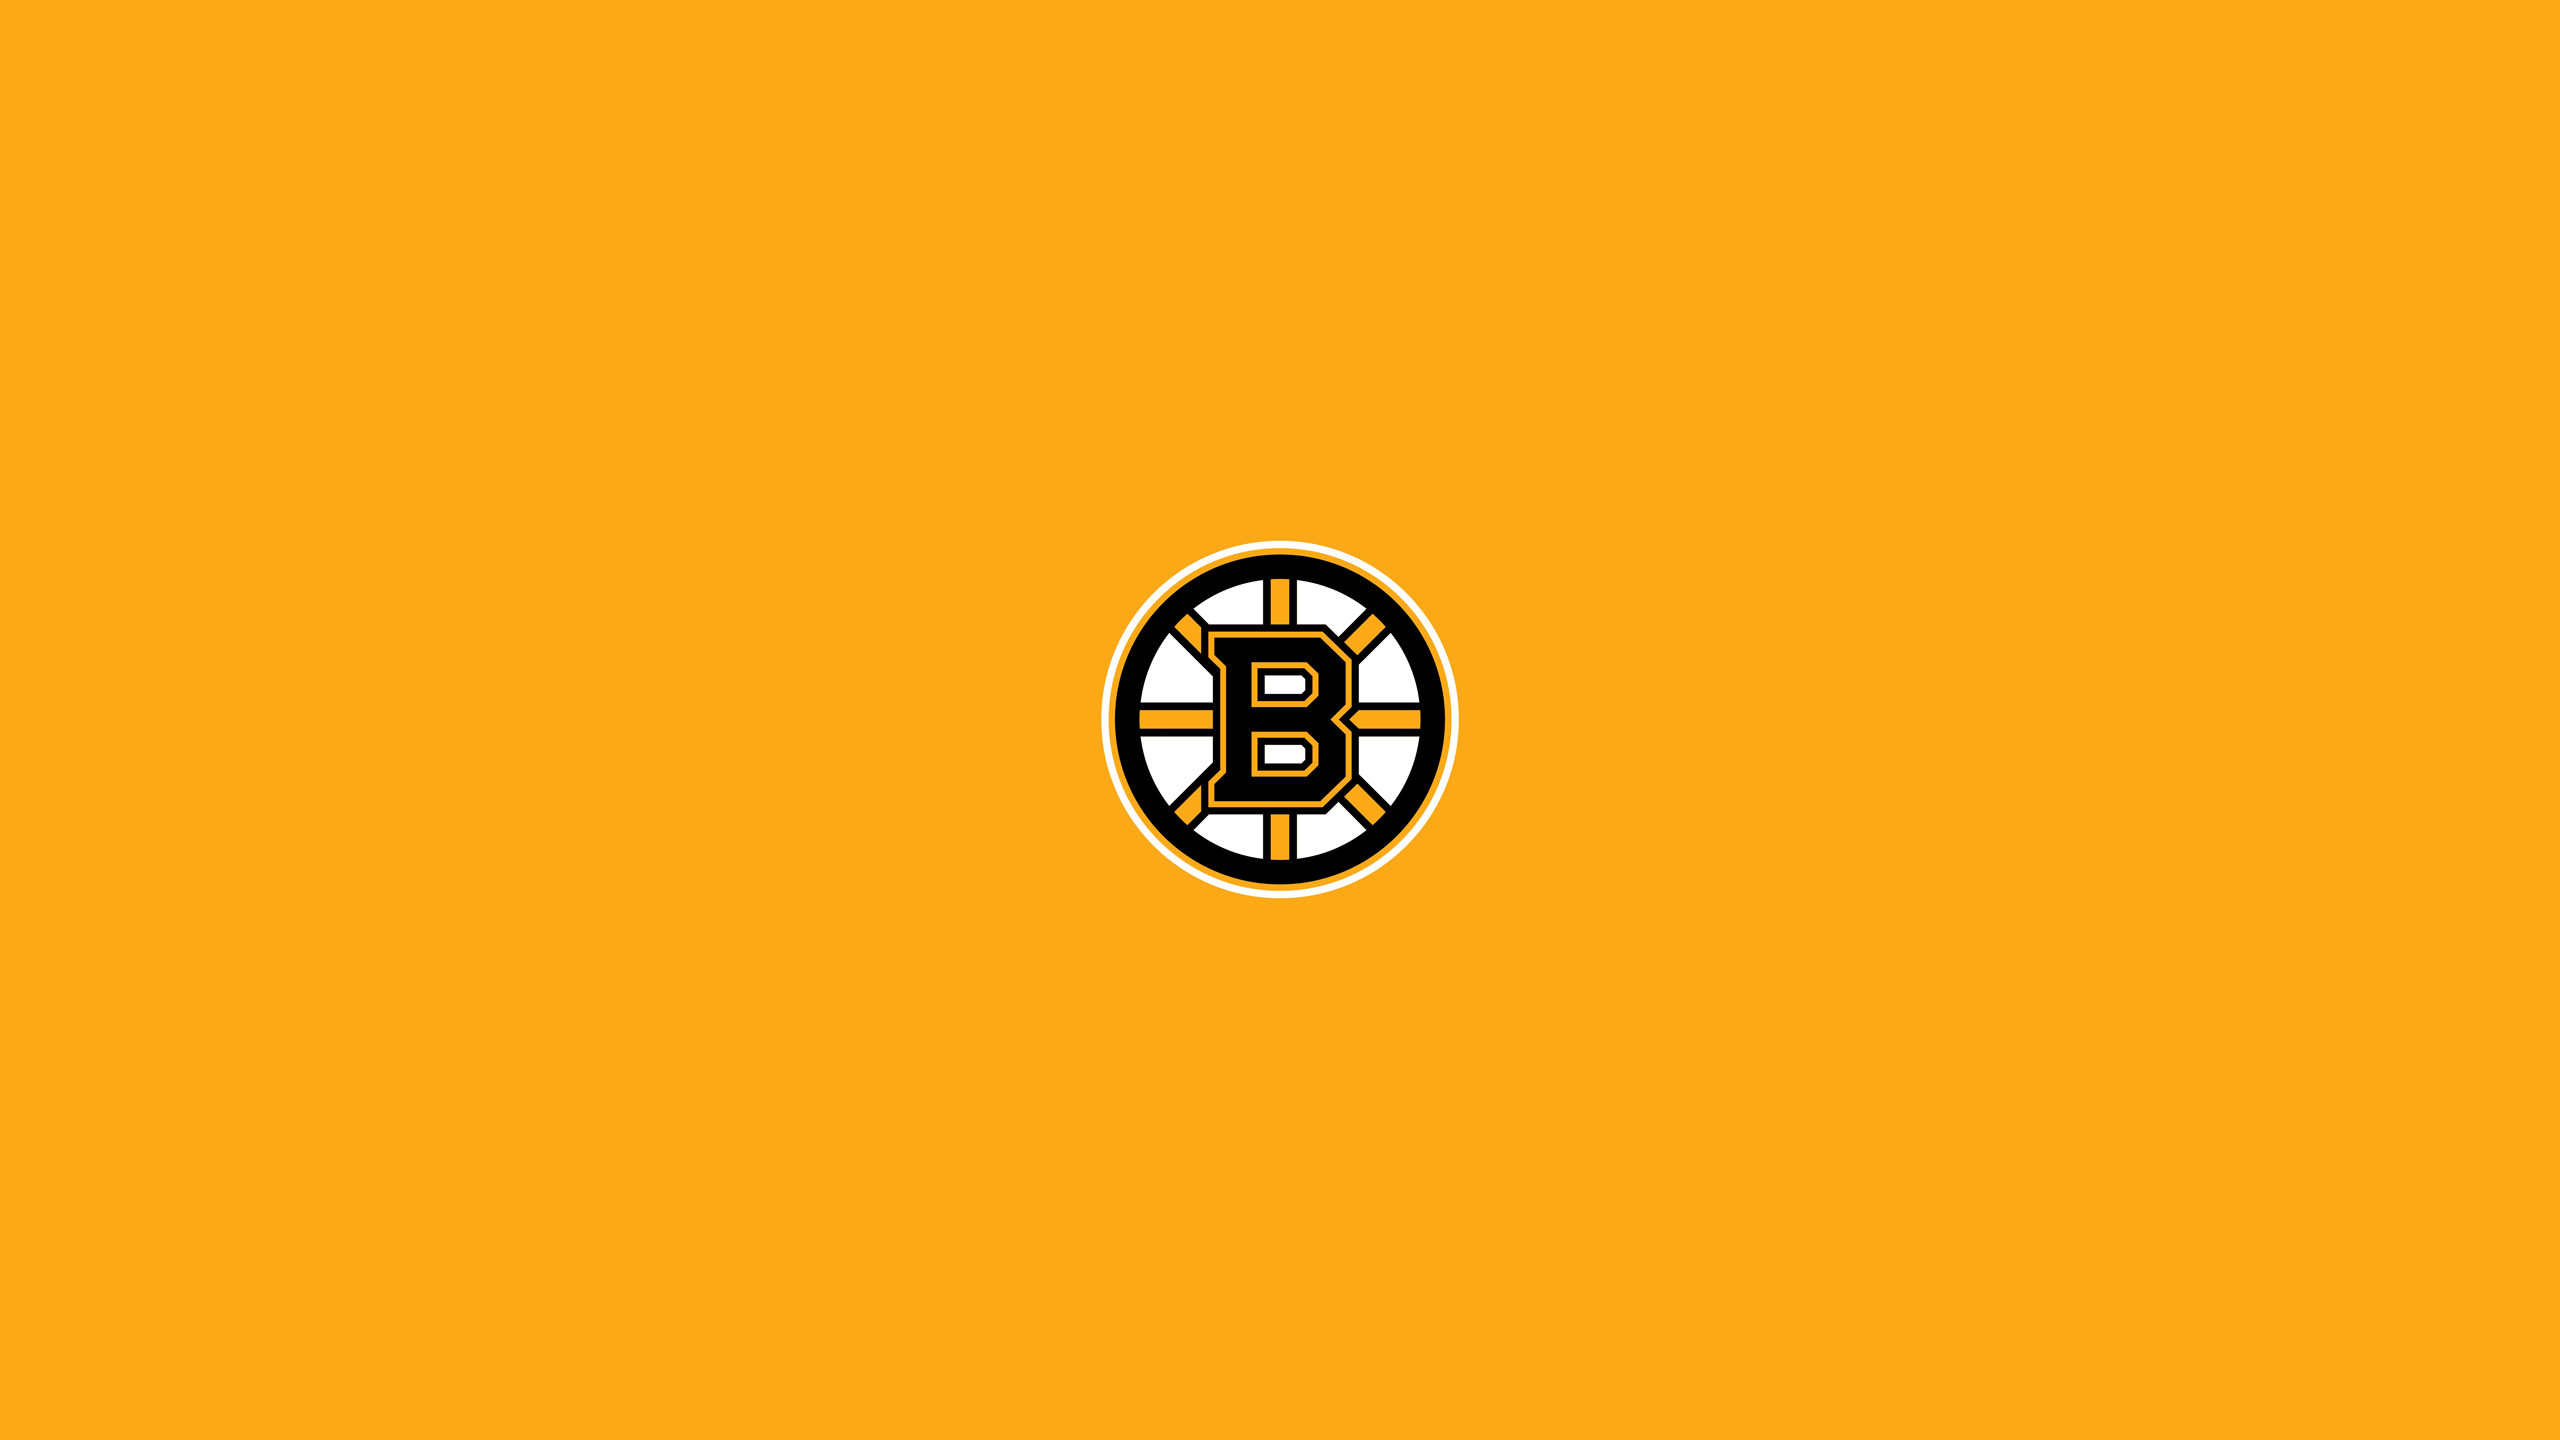 3986184 Boston Bruins IPhone Wallpapers   Boston Bruins IPhone Backgrounds